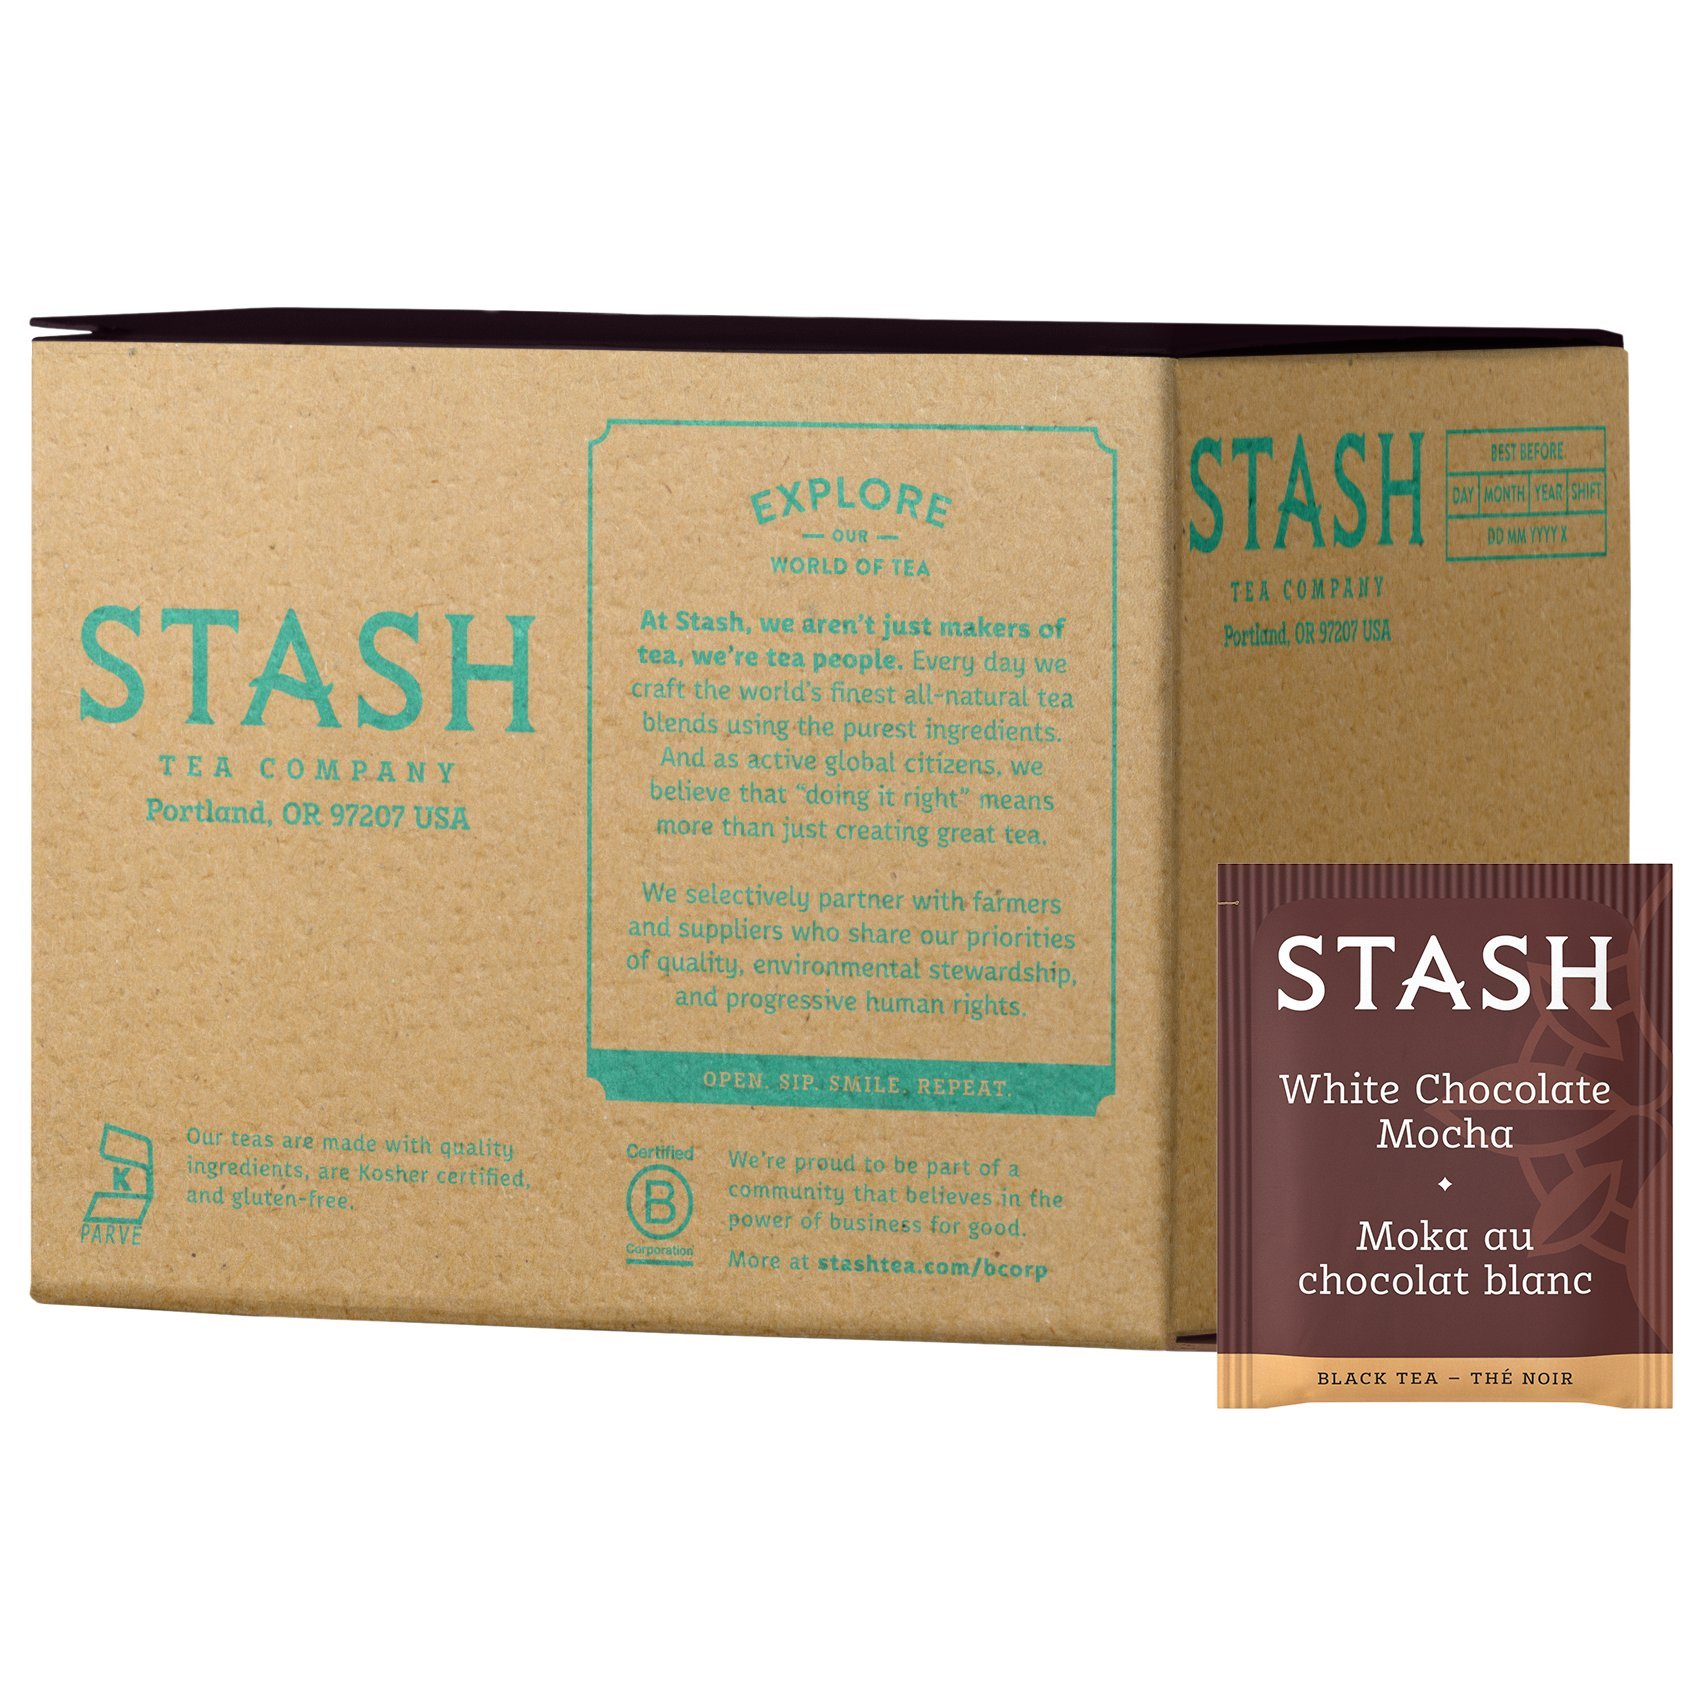 Stash Tea White Chocolate Mocha 100 Count (packaging may vary) Individual White Tea Bags for Use in Teapots Mugs or Cups, Brew Hot Tea or Iced Tea by Stash Tea